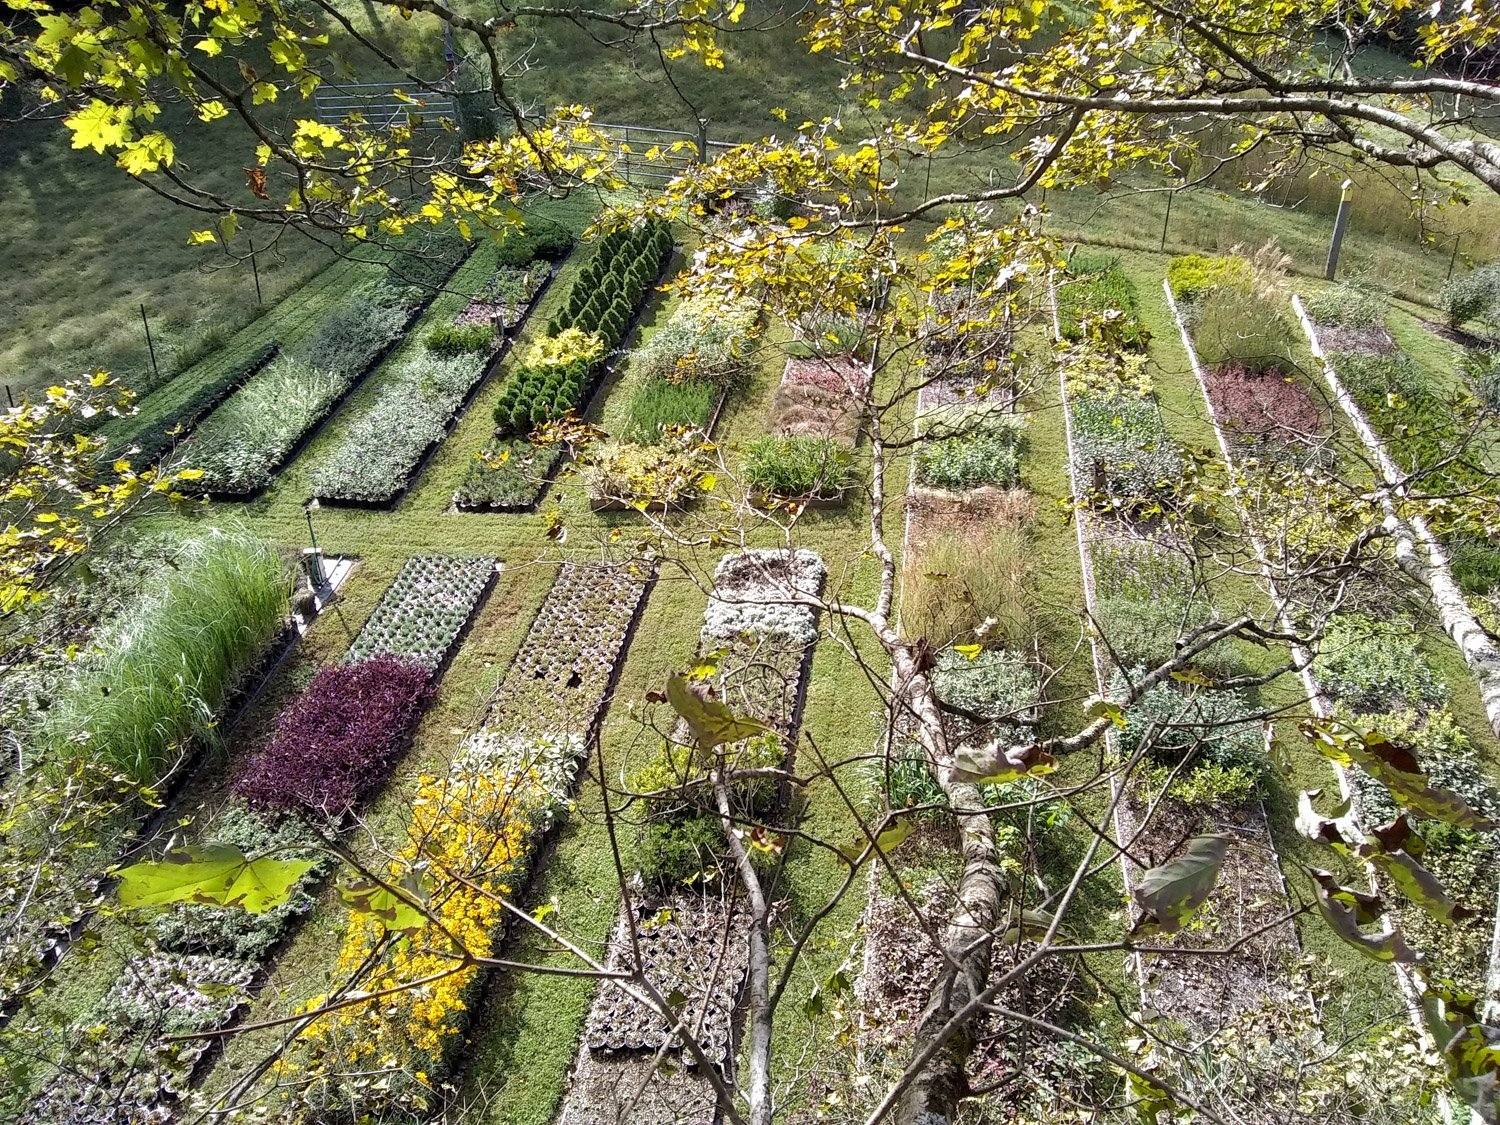 Birdeye view from maple tree of four foot wide neat rows of nursery plants with grass walkways